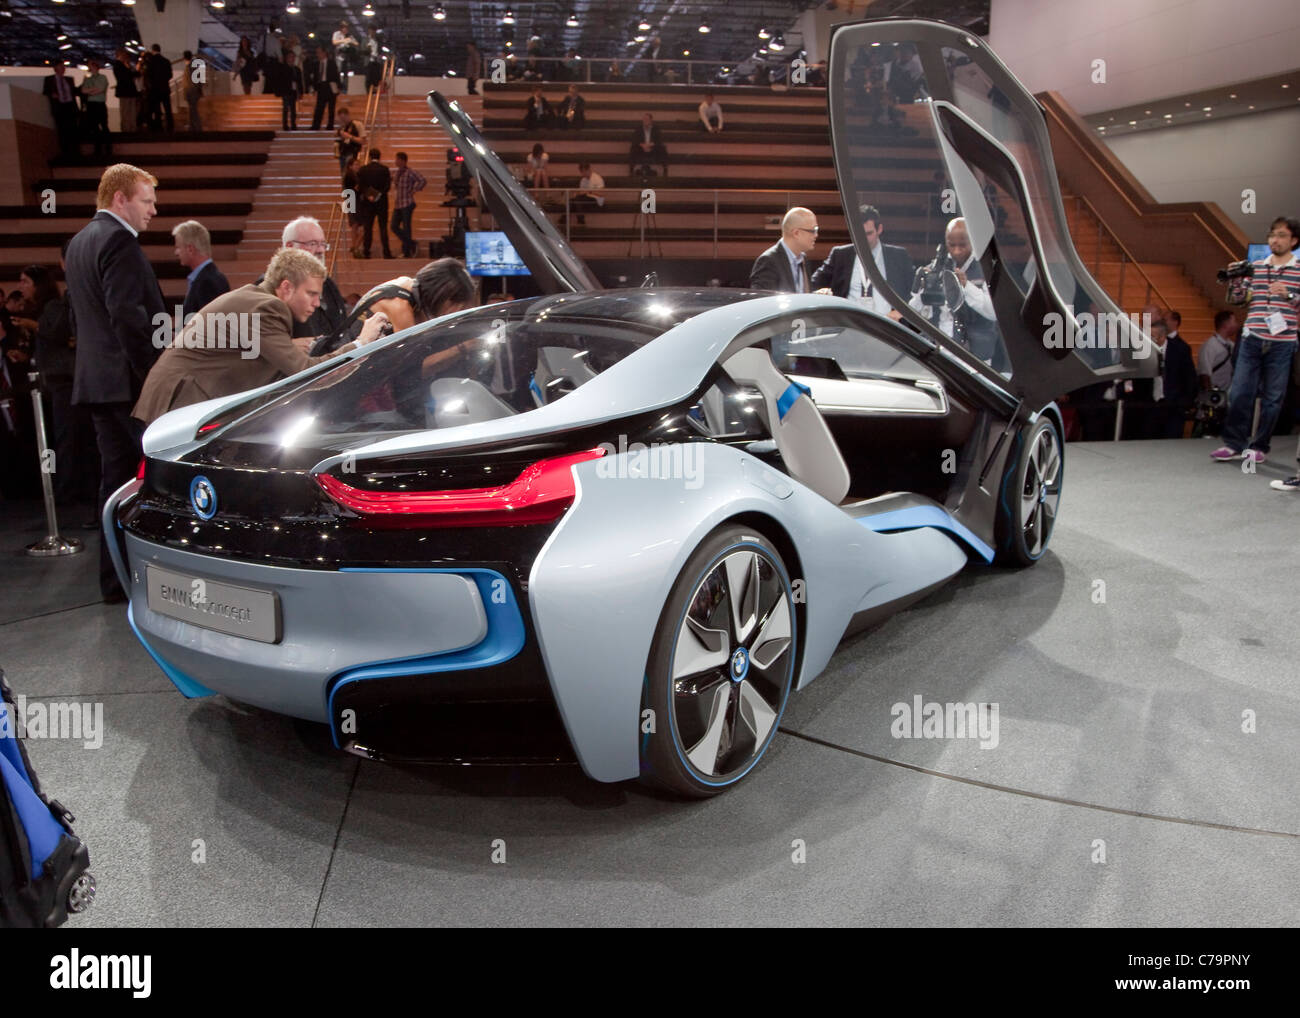 Nuova Bmw i8 concept car elettrica sulla IAA 2011 International Motor Show di Francoforte am Main, Germania Immagini Stock